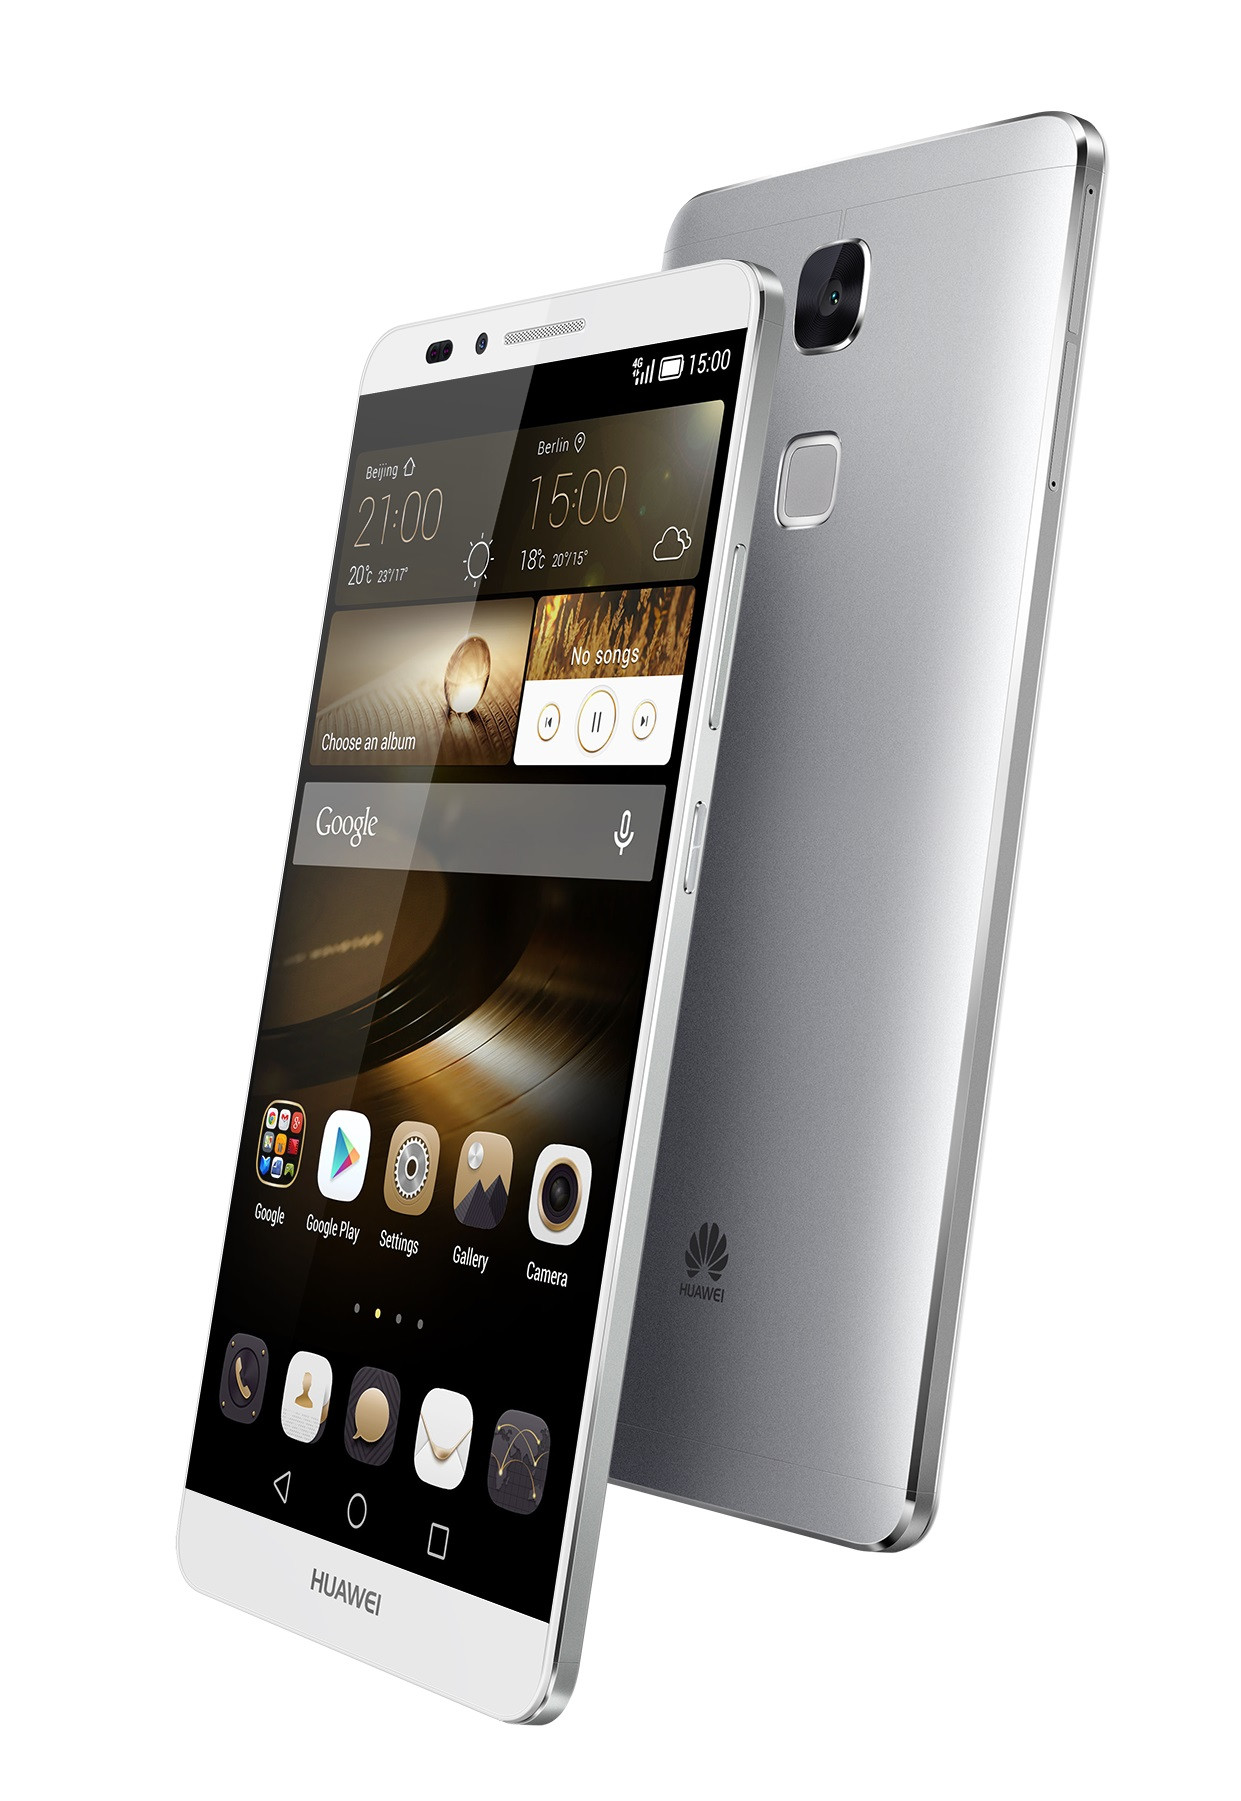 1410592190_why-you-should-upgrade-to-huawei-ascend-mate7-5.jpg